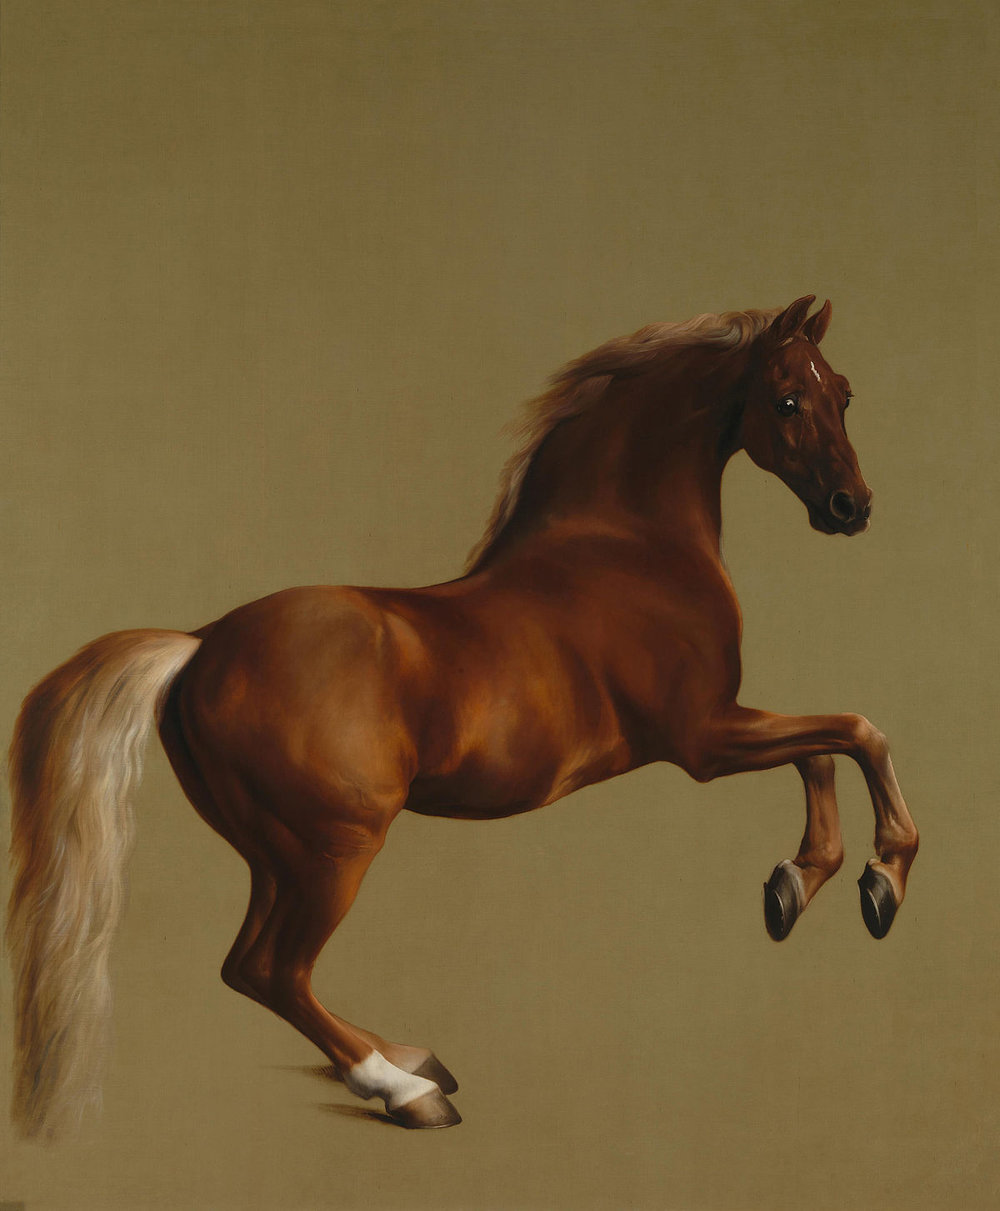 Whistlejacket    (c. 1762) by George Stubbs. The National Gallery (London, UK).